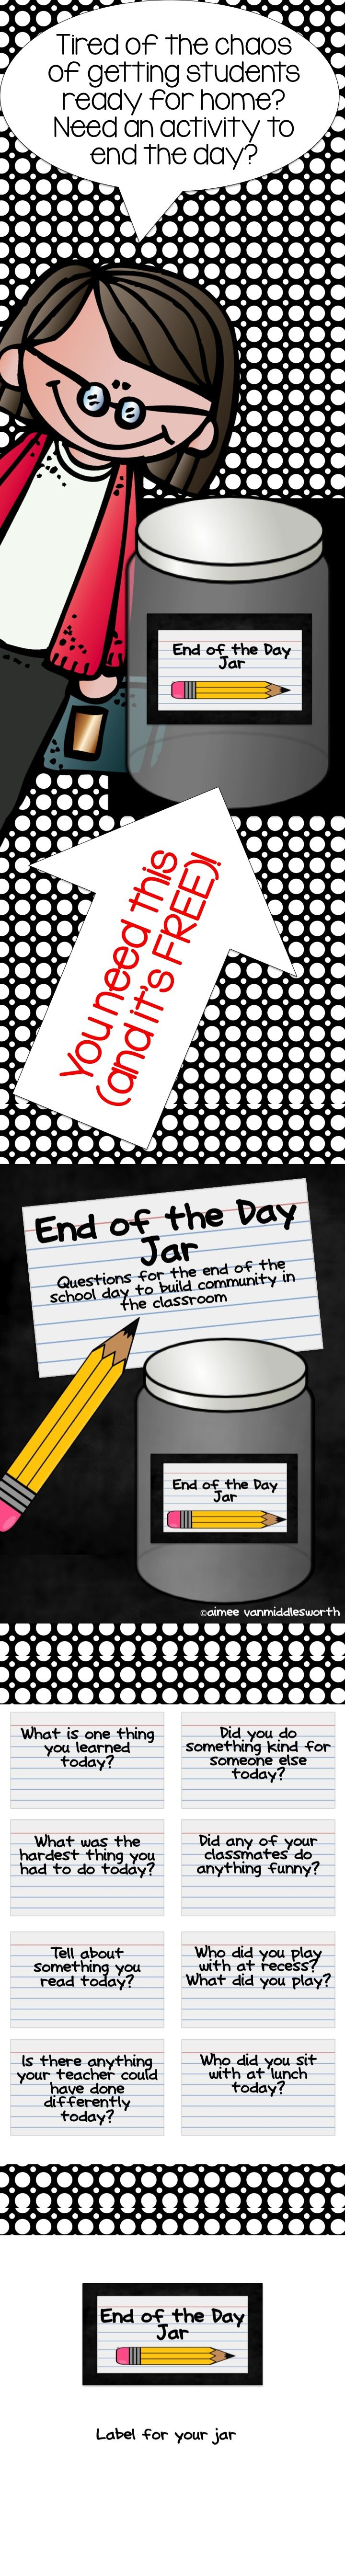 FREE!!  The End of the Jar is a great way to end the school day and wonderful for classroom management!